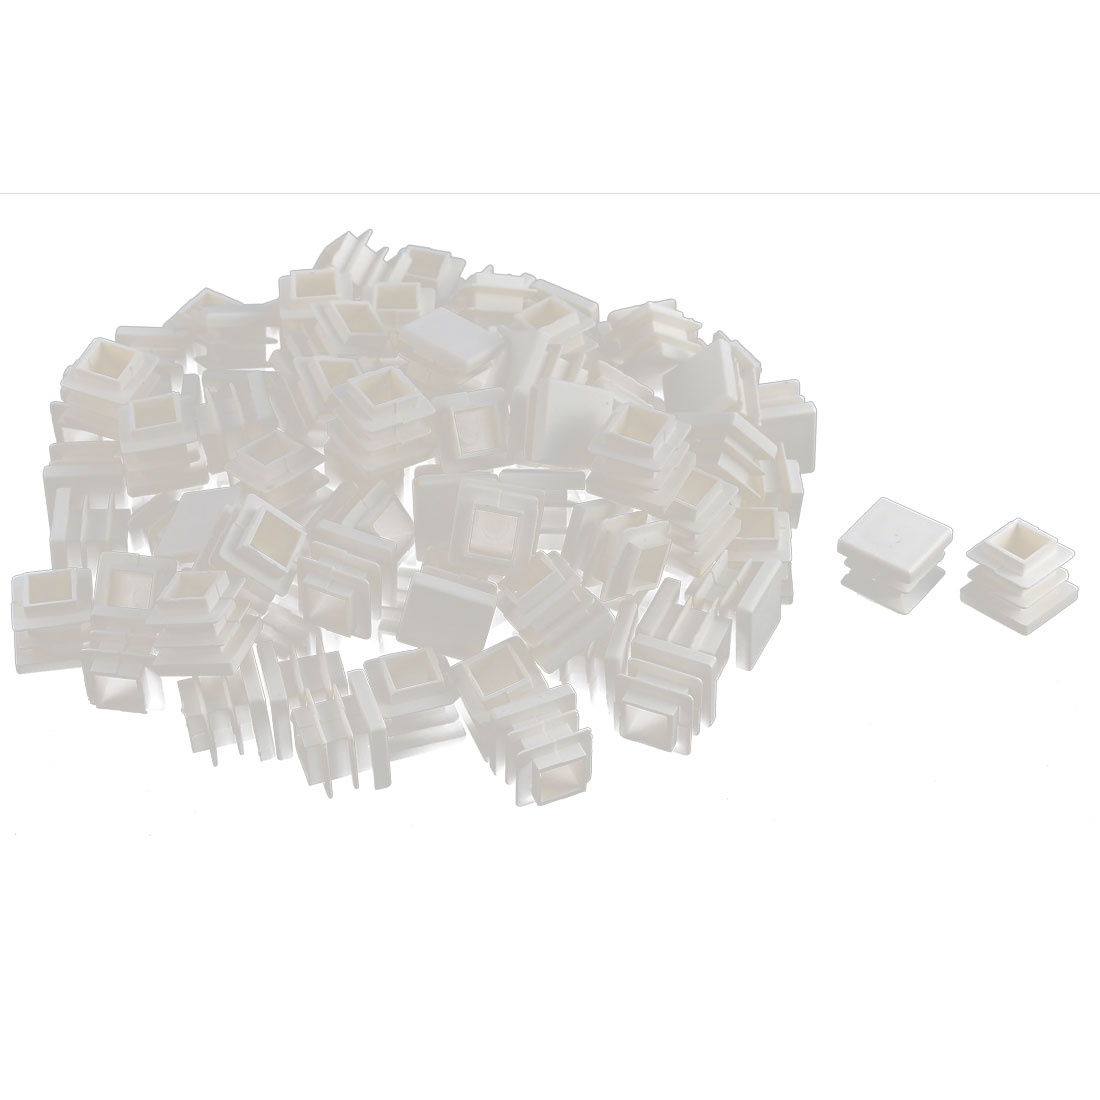 Furniture Desk Chair Legs Plastic Square Tube Pipe Insert Cover End Caps White 16 x 16mm 100pcs